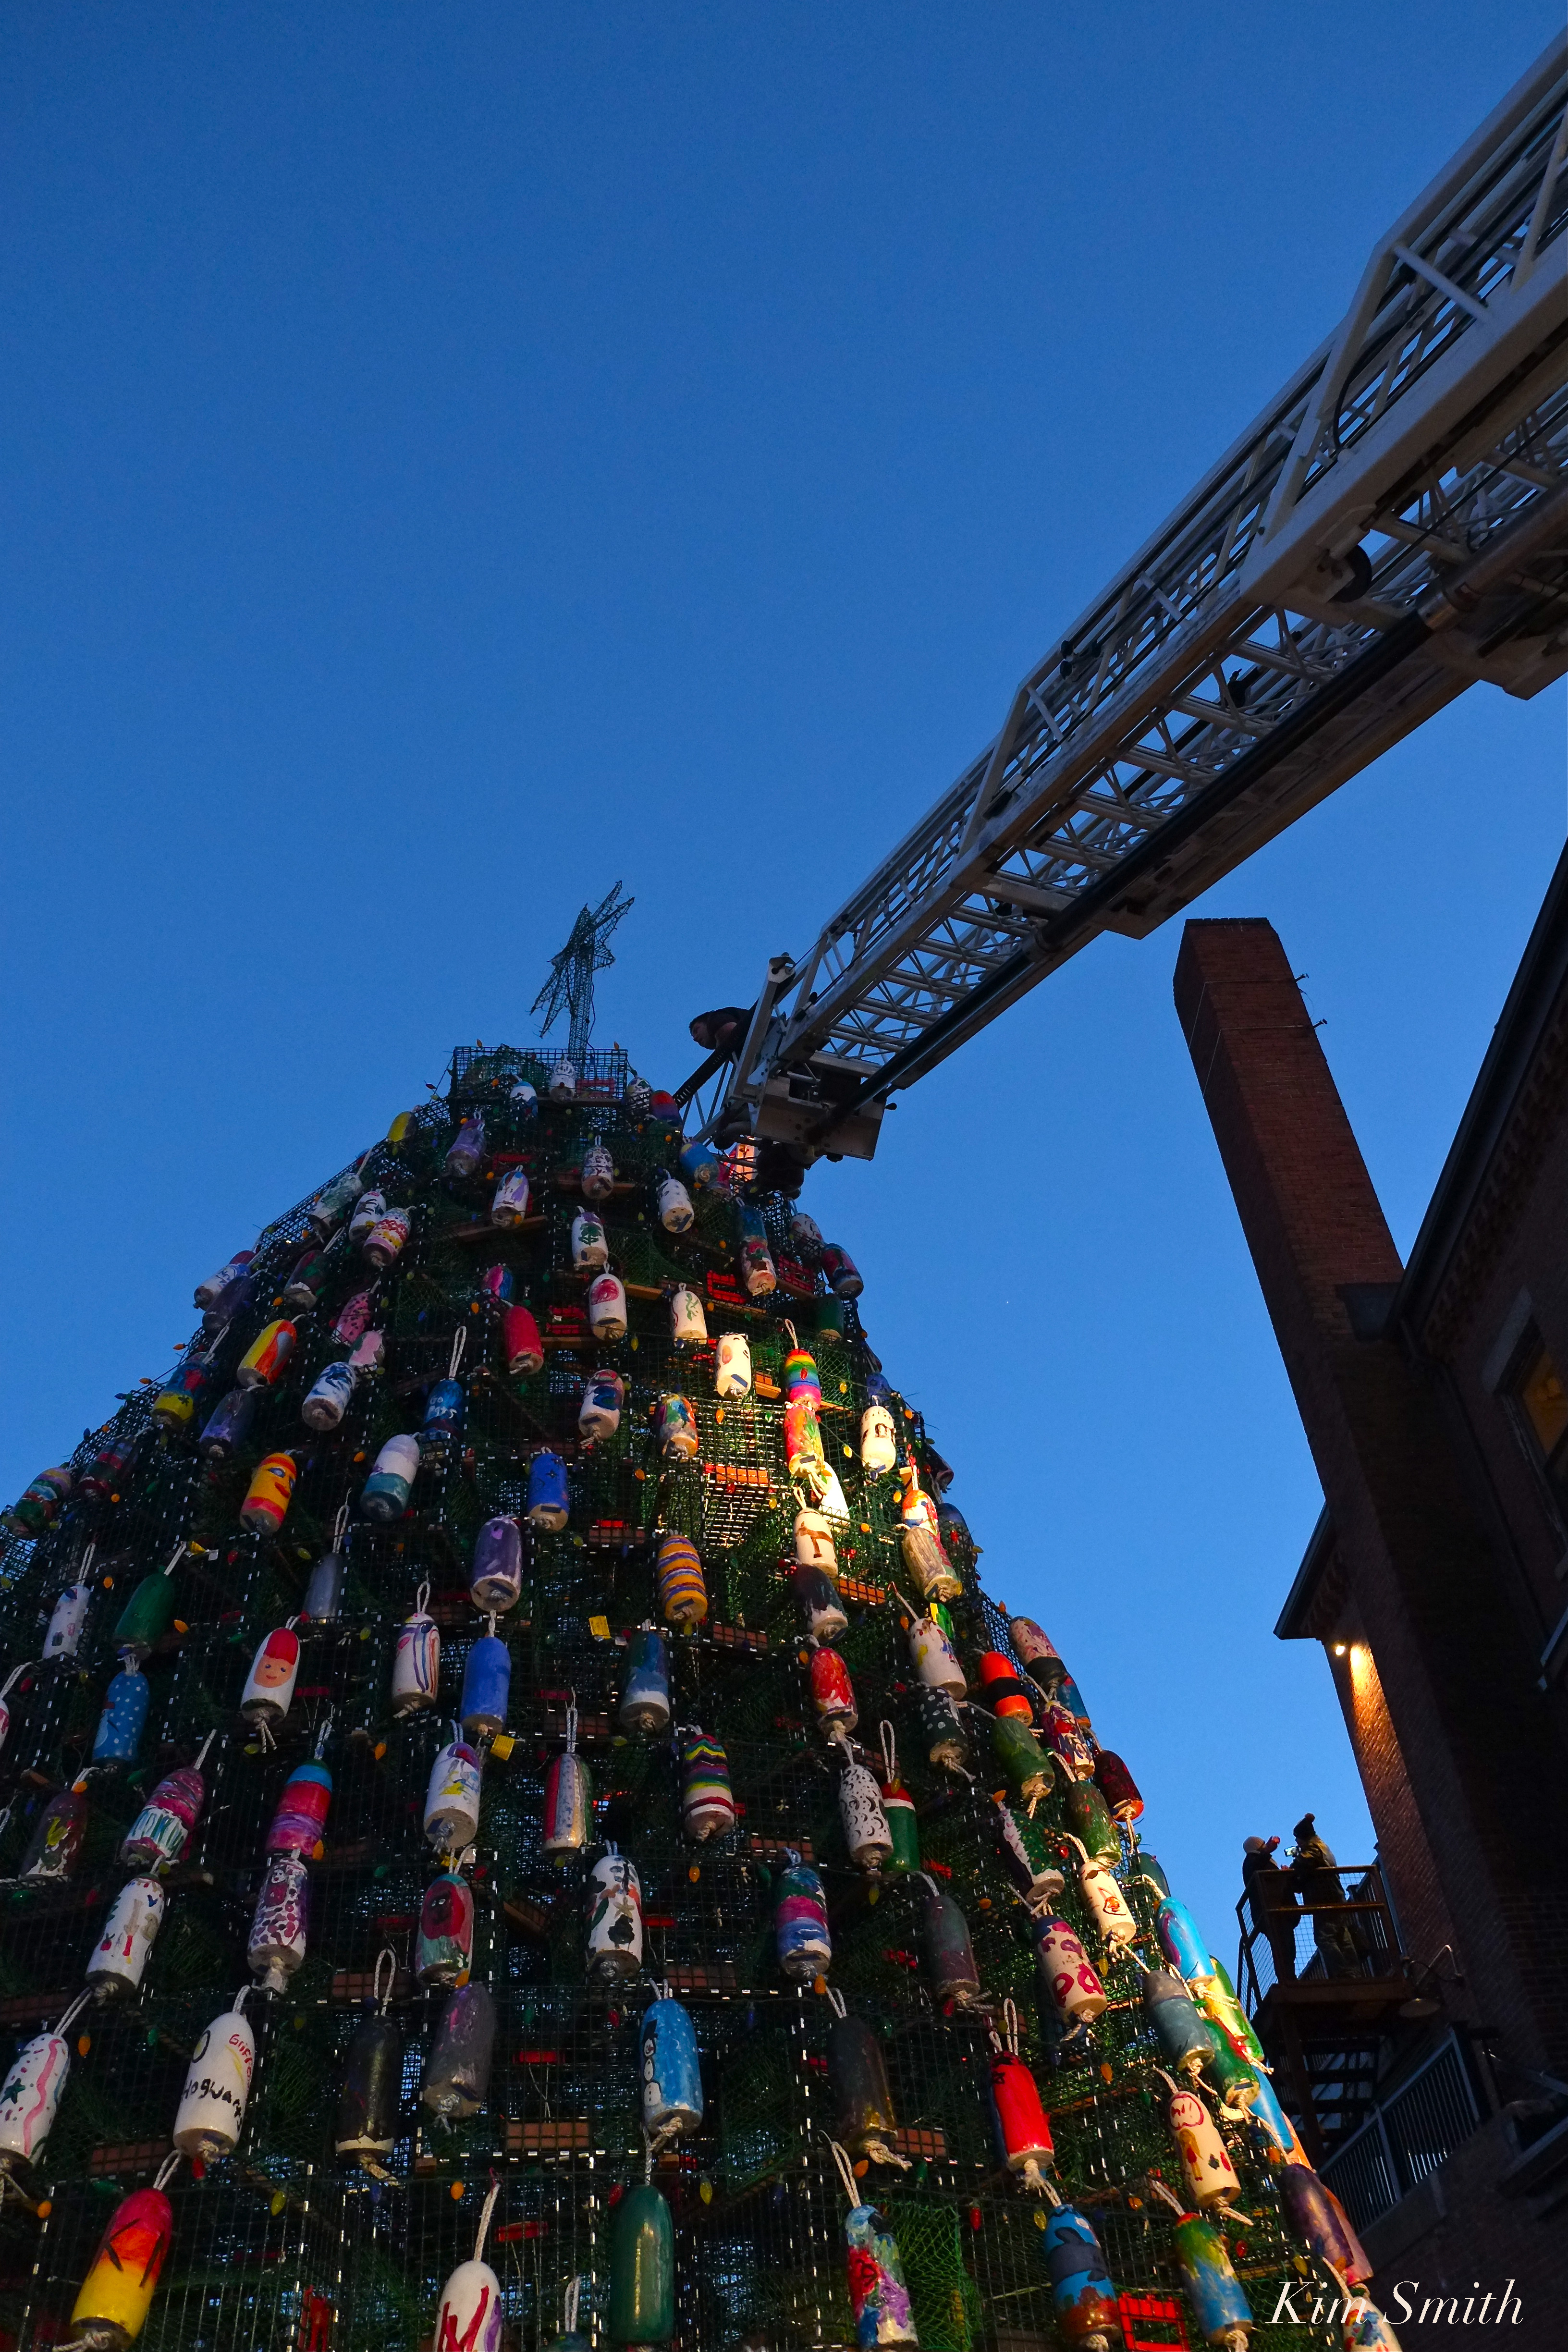 A FEW MORE SNAPSHOTS FROM LAST NIGHT'S BEAUTIFUL LOBSTER TRAP TREE LIGHTING EVENT – Good Morning ...